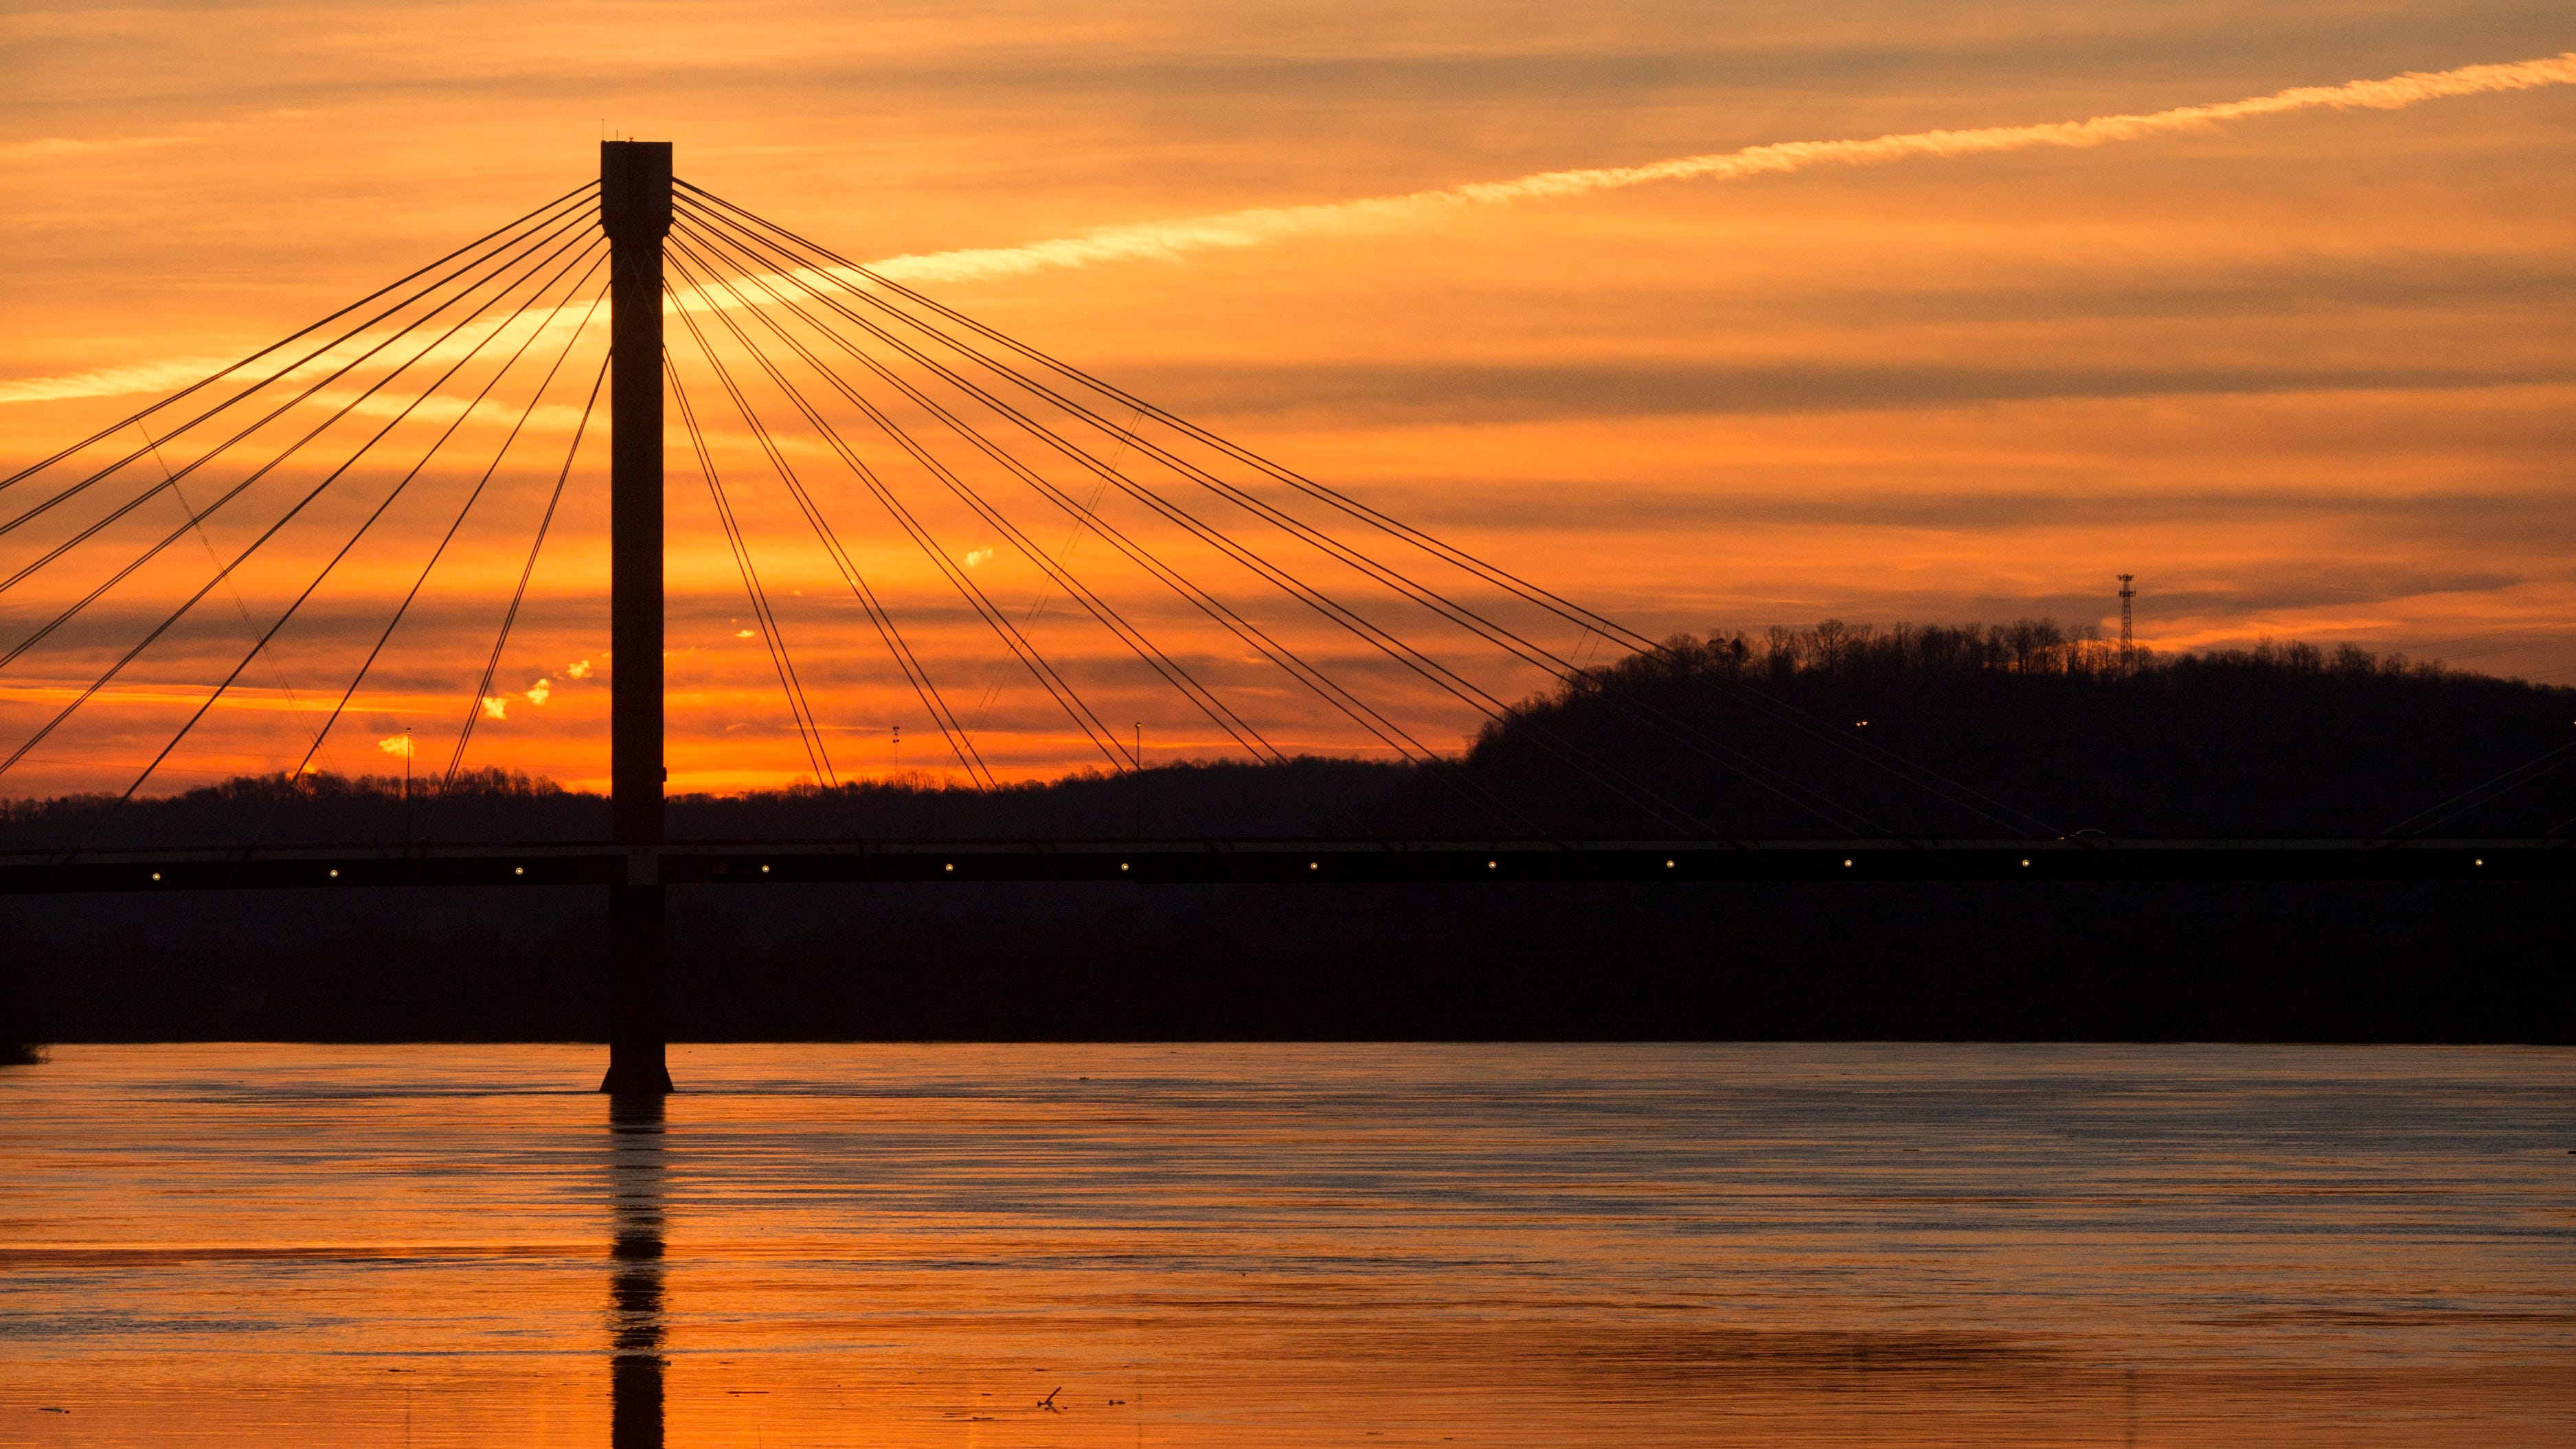 A sunrise silhouettes the US Grant Bridge in Portsmouth, Ohio. Portsmouth sits at the intersection of the Ohio River (pictured) and the Scioto River. Michael Mearan, prominent Portsmouth attorney, is part of an 80-page affidavit created by the Drug Enforcement Administration in 2015 to obtain permission to wiretap several phone, including Mearan's. It alleges he is part of a sex trafficking network.